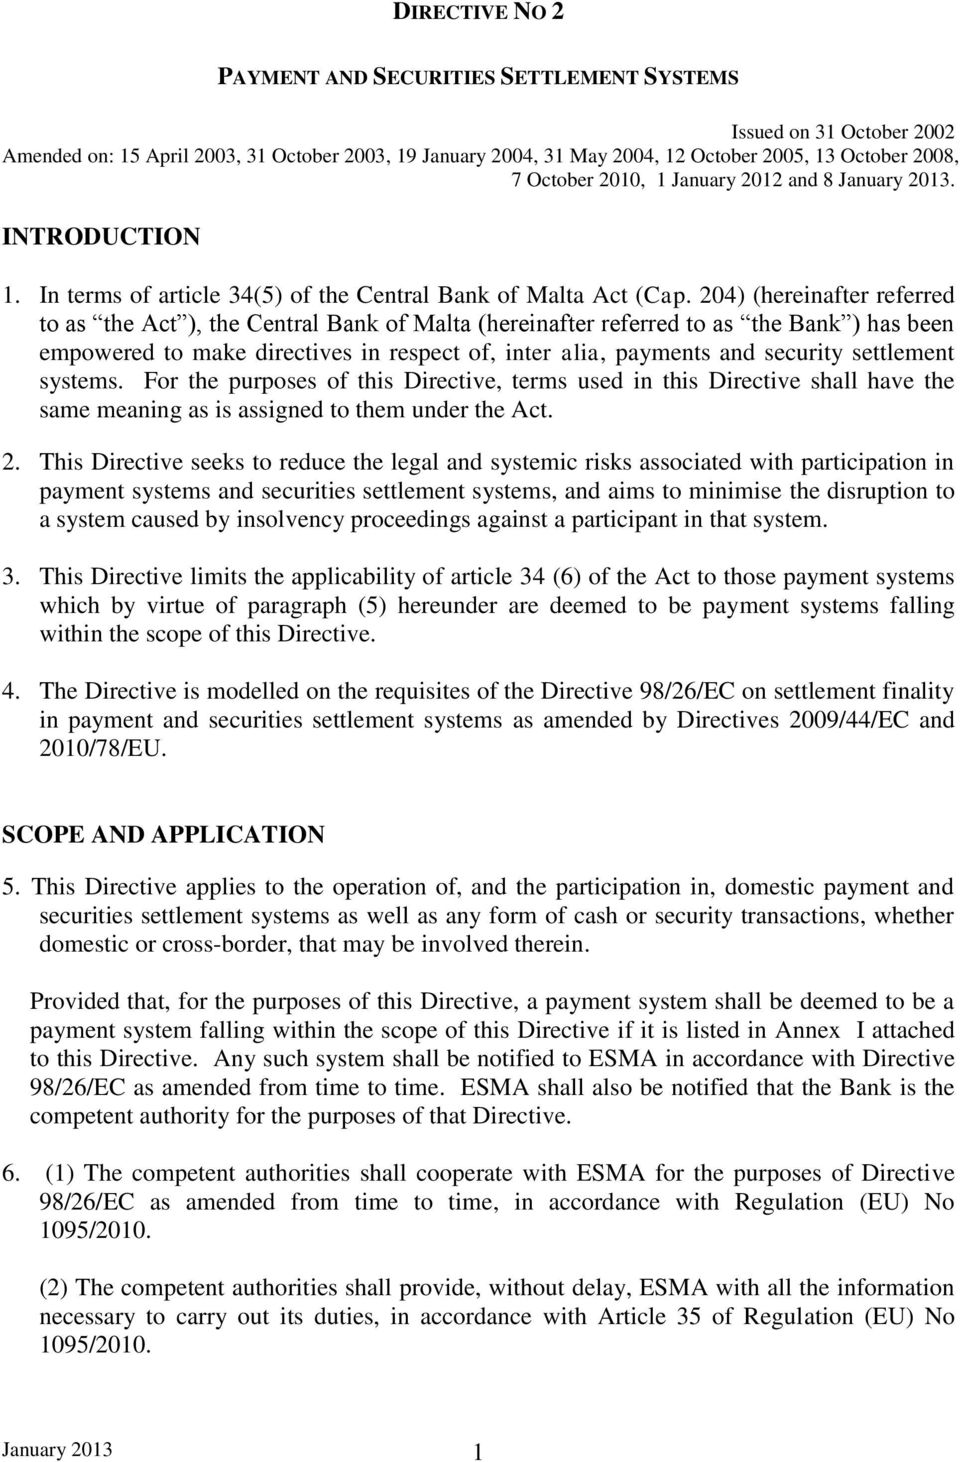 204) (hereinafter referred to as the Act ), the Central Bank of Malta (hereinafter referred to as the Bank ) has been empowered to make directives in respect of, inter alia, payments and security